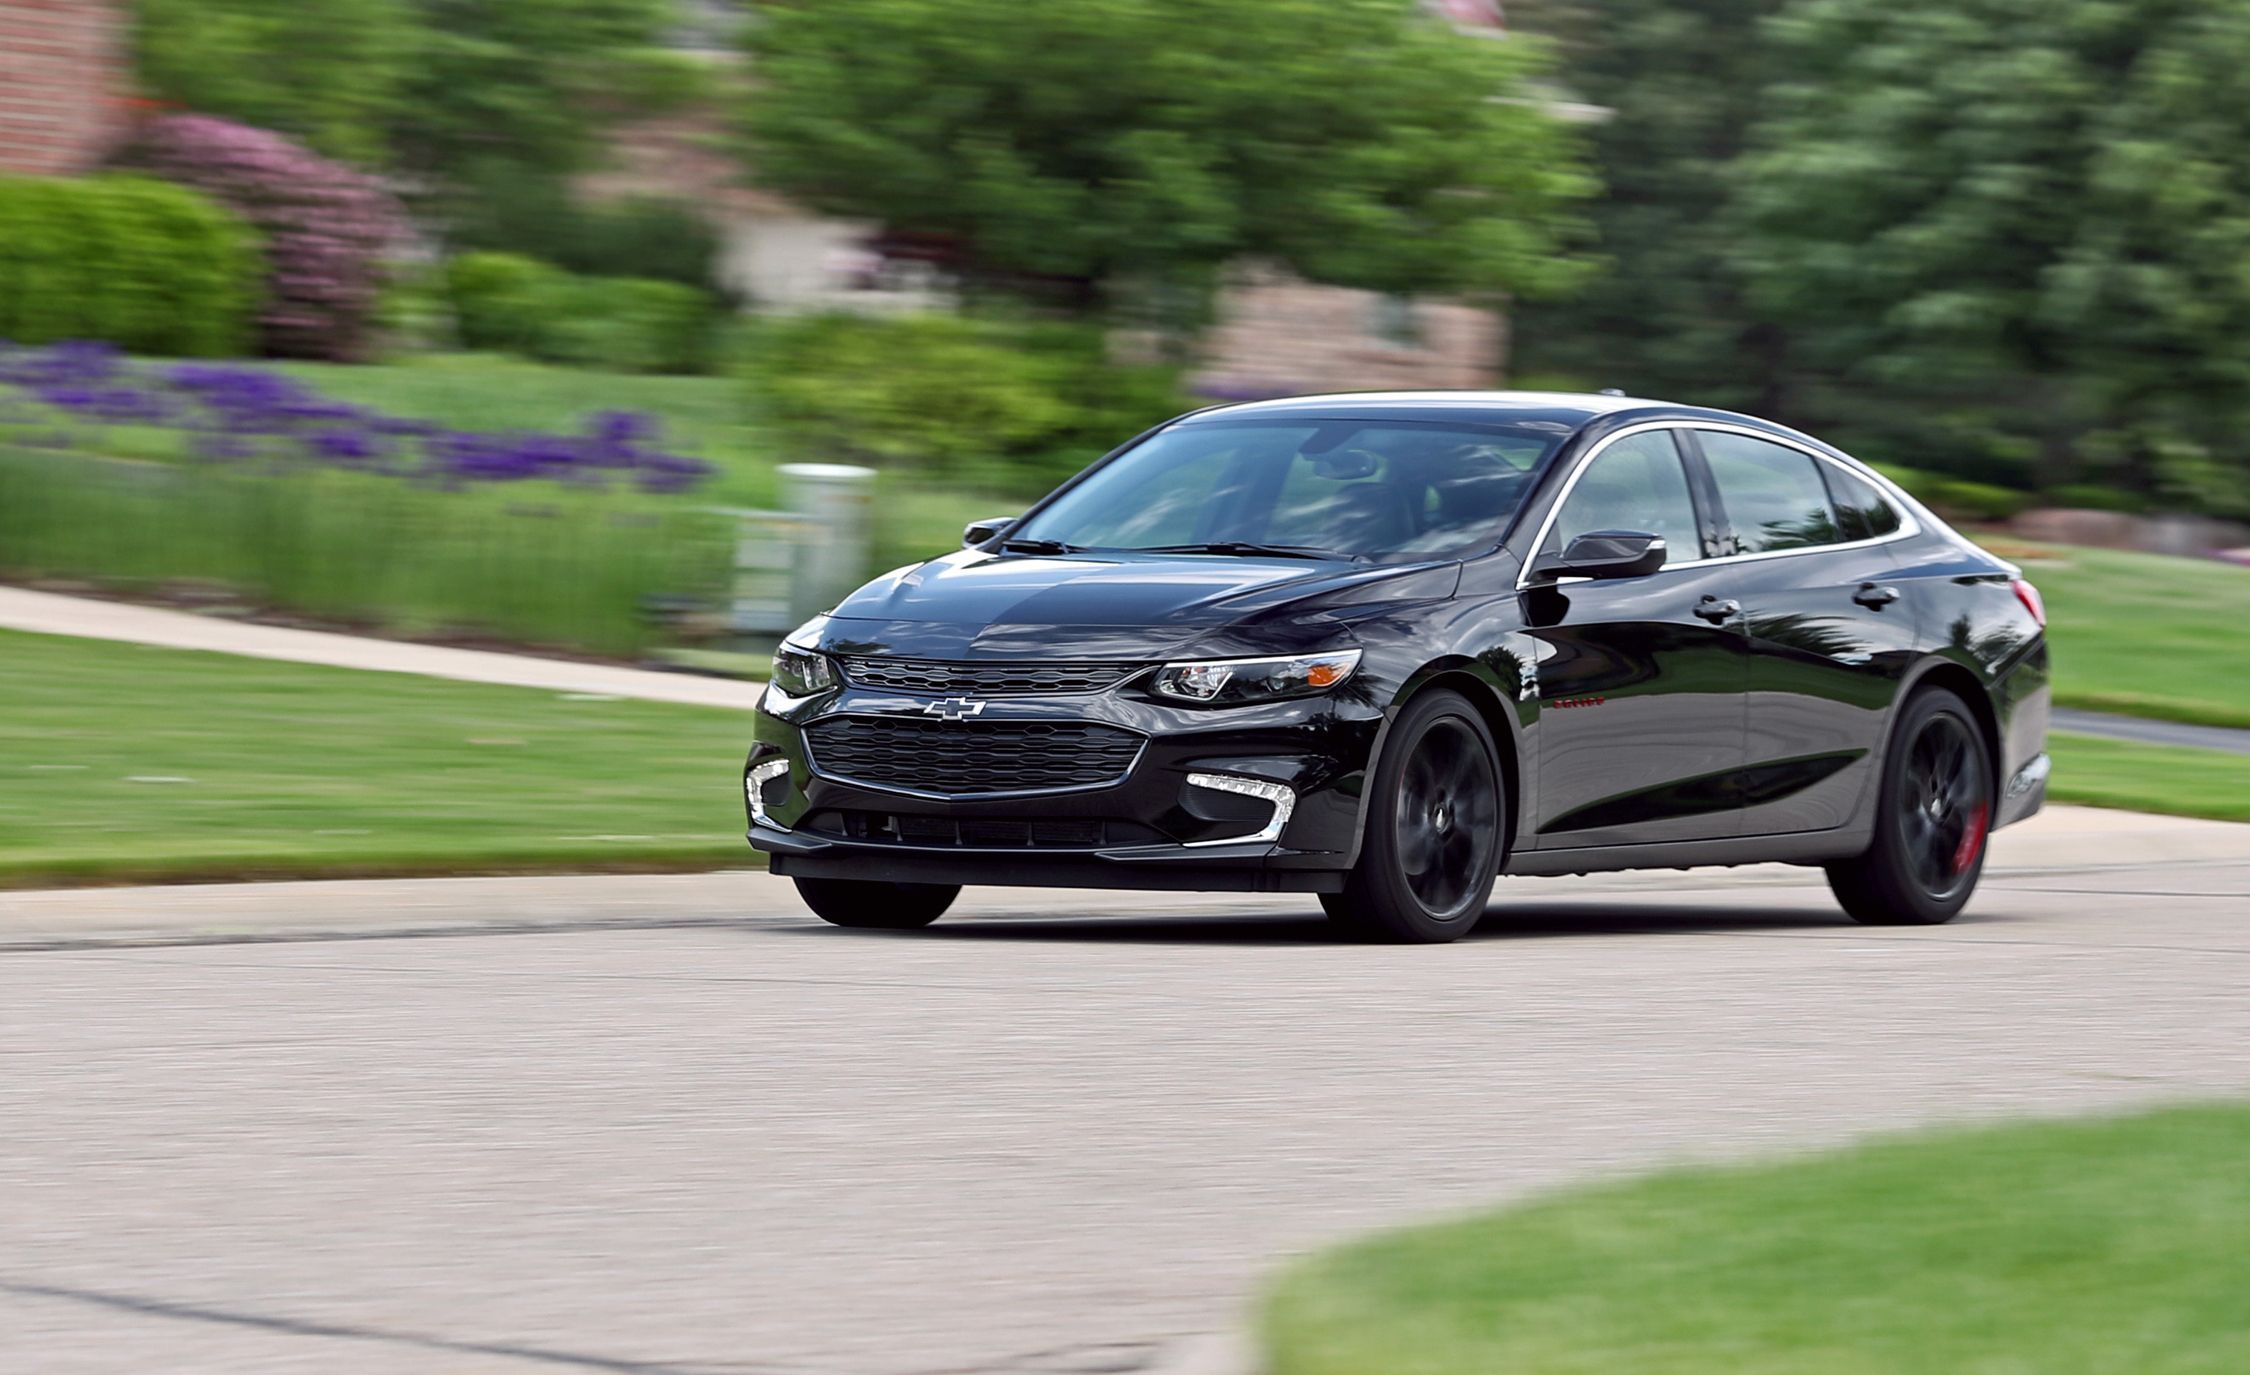 2018 chevrolet malibu 1 5t test skip the extra spice review car